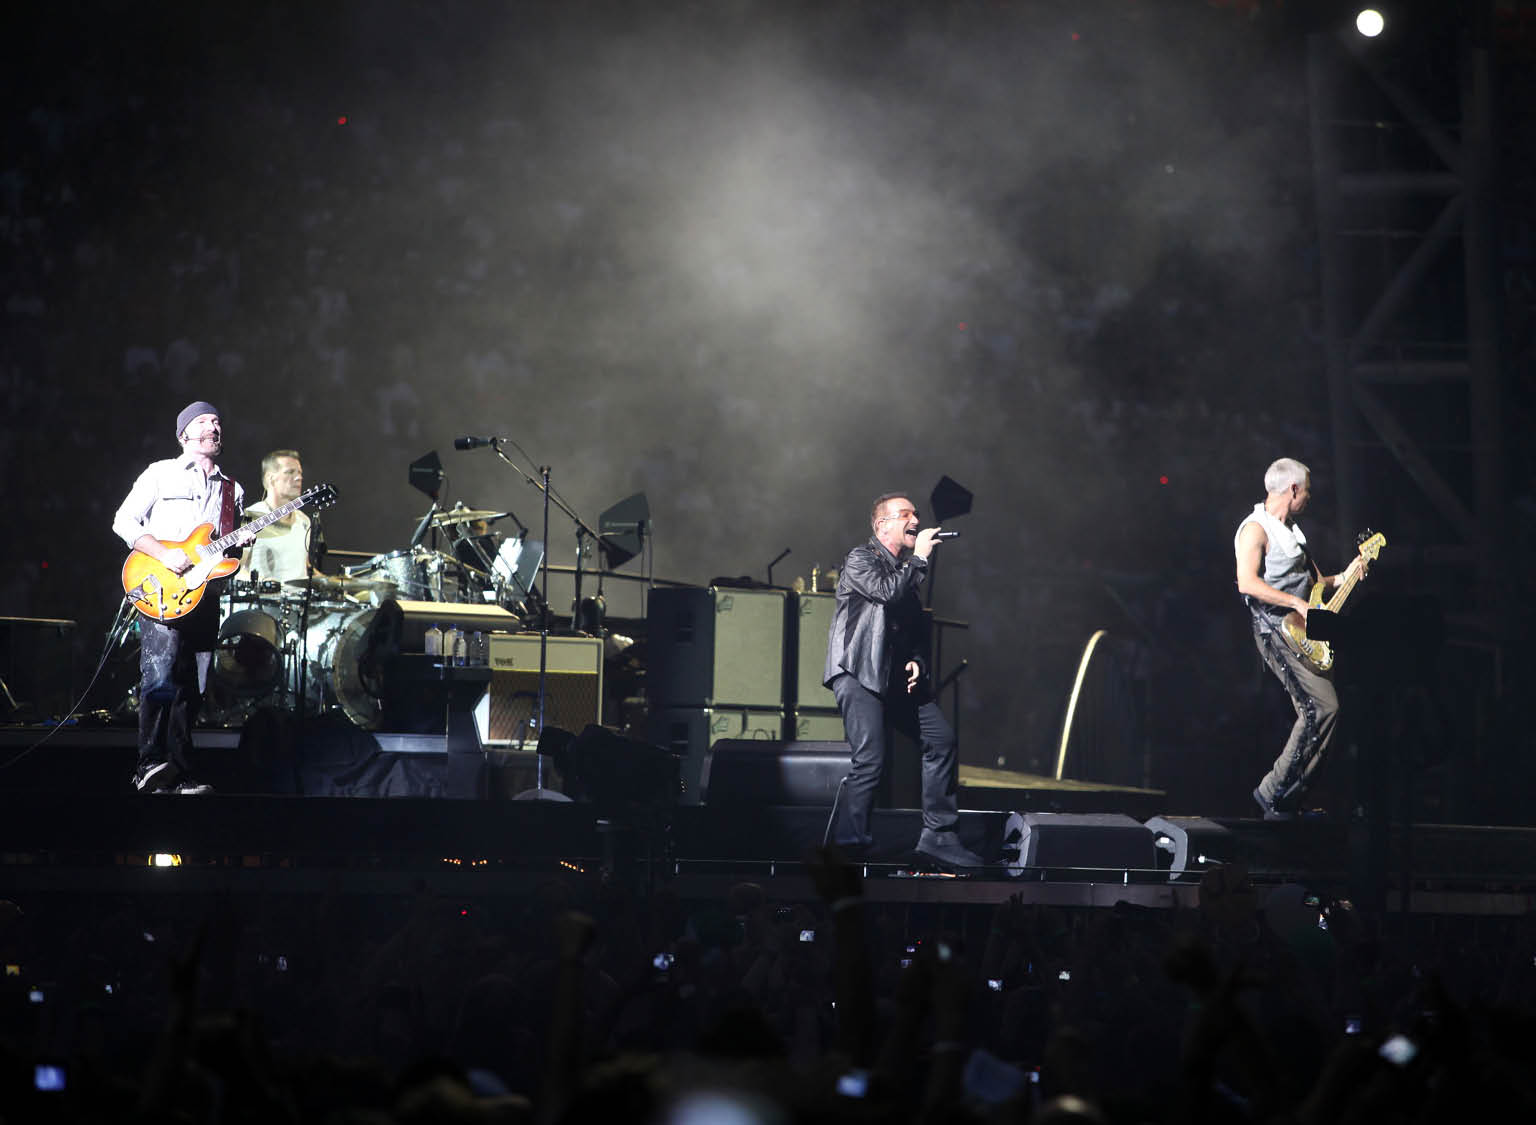 U2 officially announce the 2015 Innocence + Experience World Tour only in indoor arenas. Shown here are archive images from the 360 tour in the Italian big sport arena (Olympic in Turin and Meazza in Milan). Next Italian stop will be in Turin's Olympic A on September 4 and 5, 2015.  Pictured: U2 Ref: SPL902826  031214   Picture by: Bruno Marzi / Splash News  Splash News and Pictures Los Angeles:310-821-2666 New York:212-619-2666 London:870-934-2666 photodesk@splashnews.com  U2 officially announce the 2015 Innocence + Experience World Tour only in indoor arenas. Shown here are archive images from the 360 tour in the Italian big sport arena (Olympic in Turin and Meazza in Milan). Next Italian stop will be in Turin's Olympic A on September 4 and 5, 2015.  Pictured: U2 Ref: SPL902826  031214   Picture by: Bruno Marzi / Splash News  Splash News and Pictures Los Angeles:310-821-2666 New York:212-619-2666 London:870-934-2666 photodesk@splashnews.com  U2 officially announce the 2015 Innocence + Experience World Tour only in indoor arenas. Shown here are archive images from the 360 tour in the Italian big sport arena (Olympic in Turin and Meazza in Milan). Next Italian stop will be in Turin's Olympic A on September 4 and 5, 2015.  Pictured: U2 Ref: SPL902826  031214   Picture by: Bruno Marzi / Splash News  Splash News and Pictures Los Angeles:310-821-2666 New York:212-619-2666 London:870-934-2666 photodesk@splashnews.com